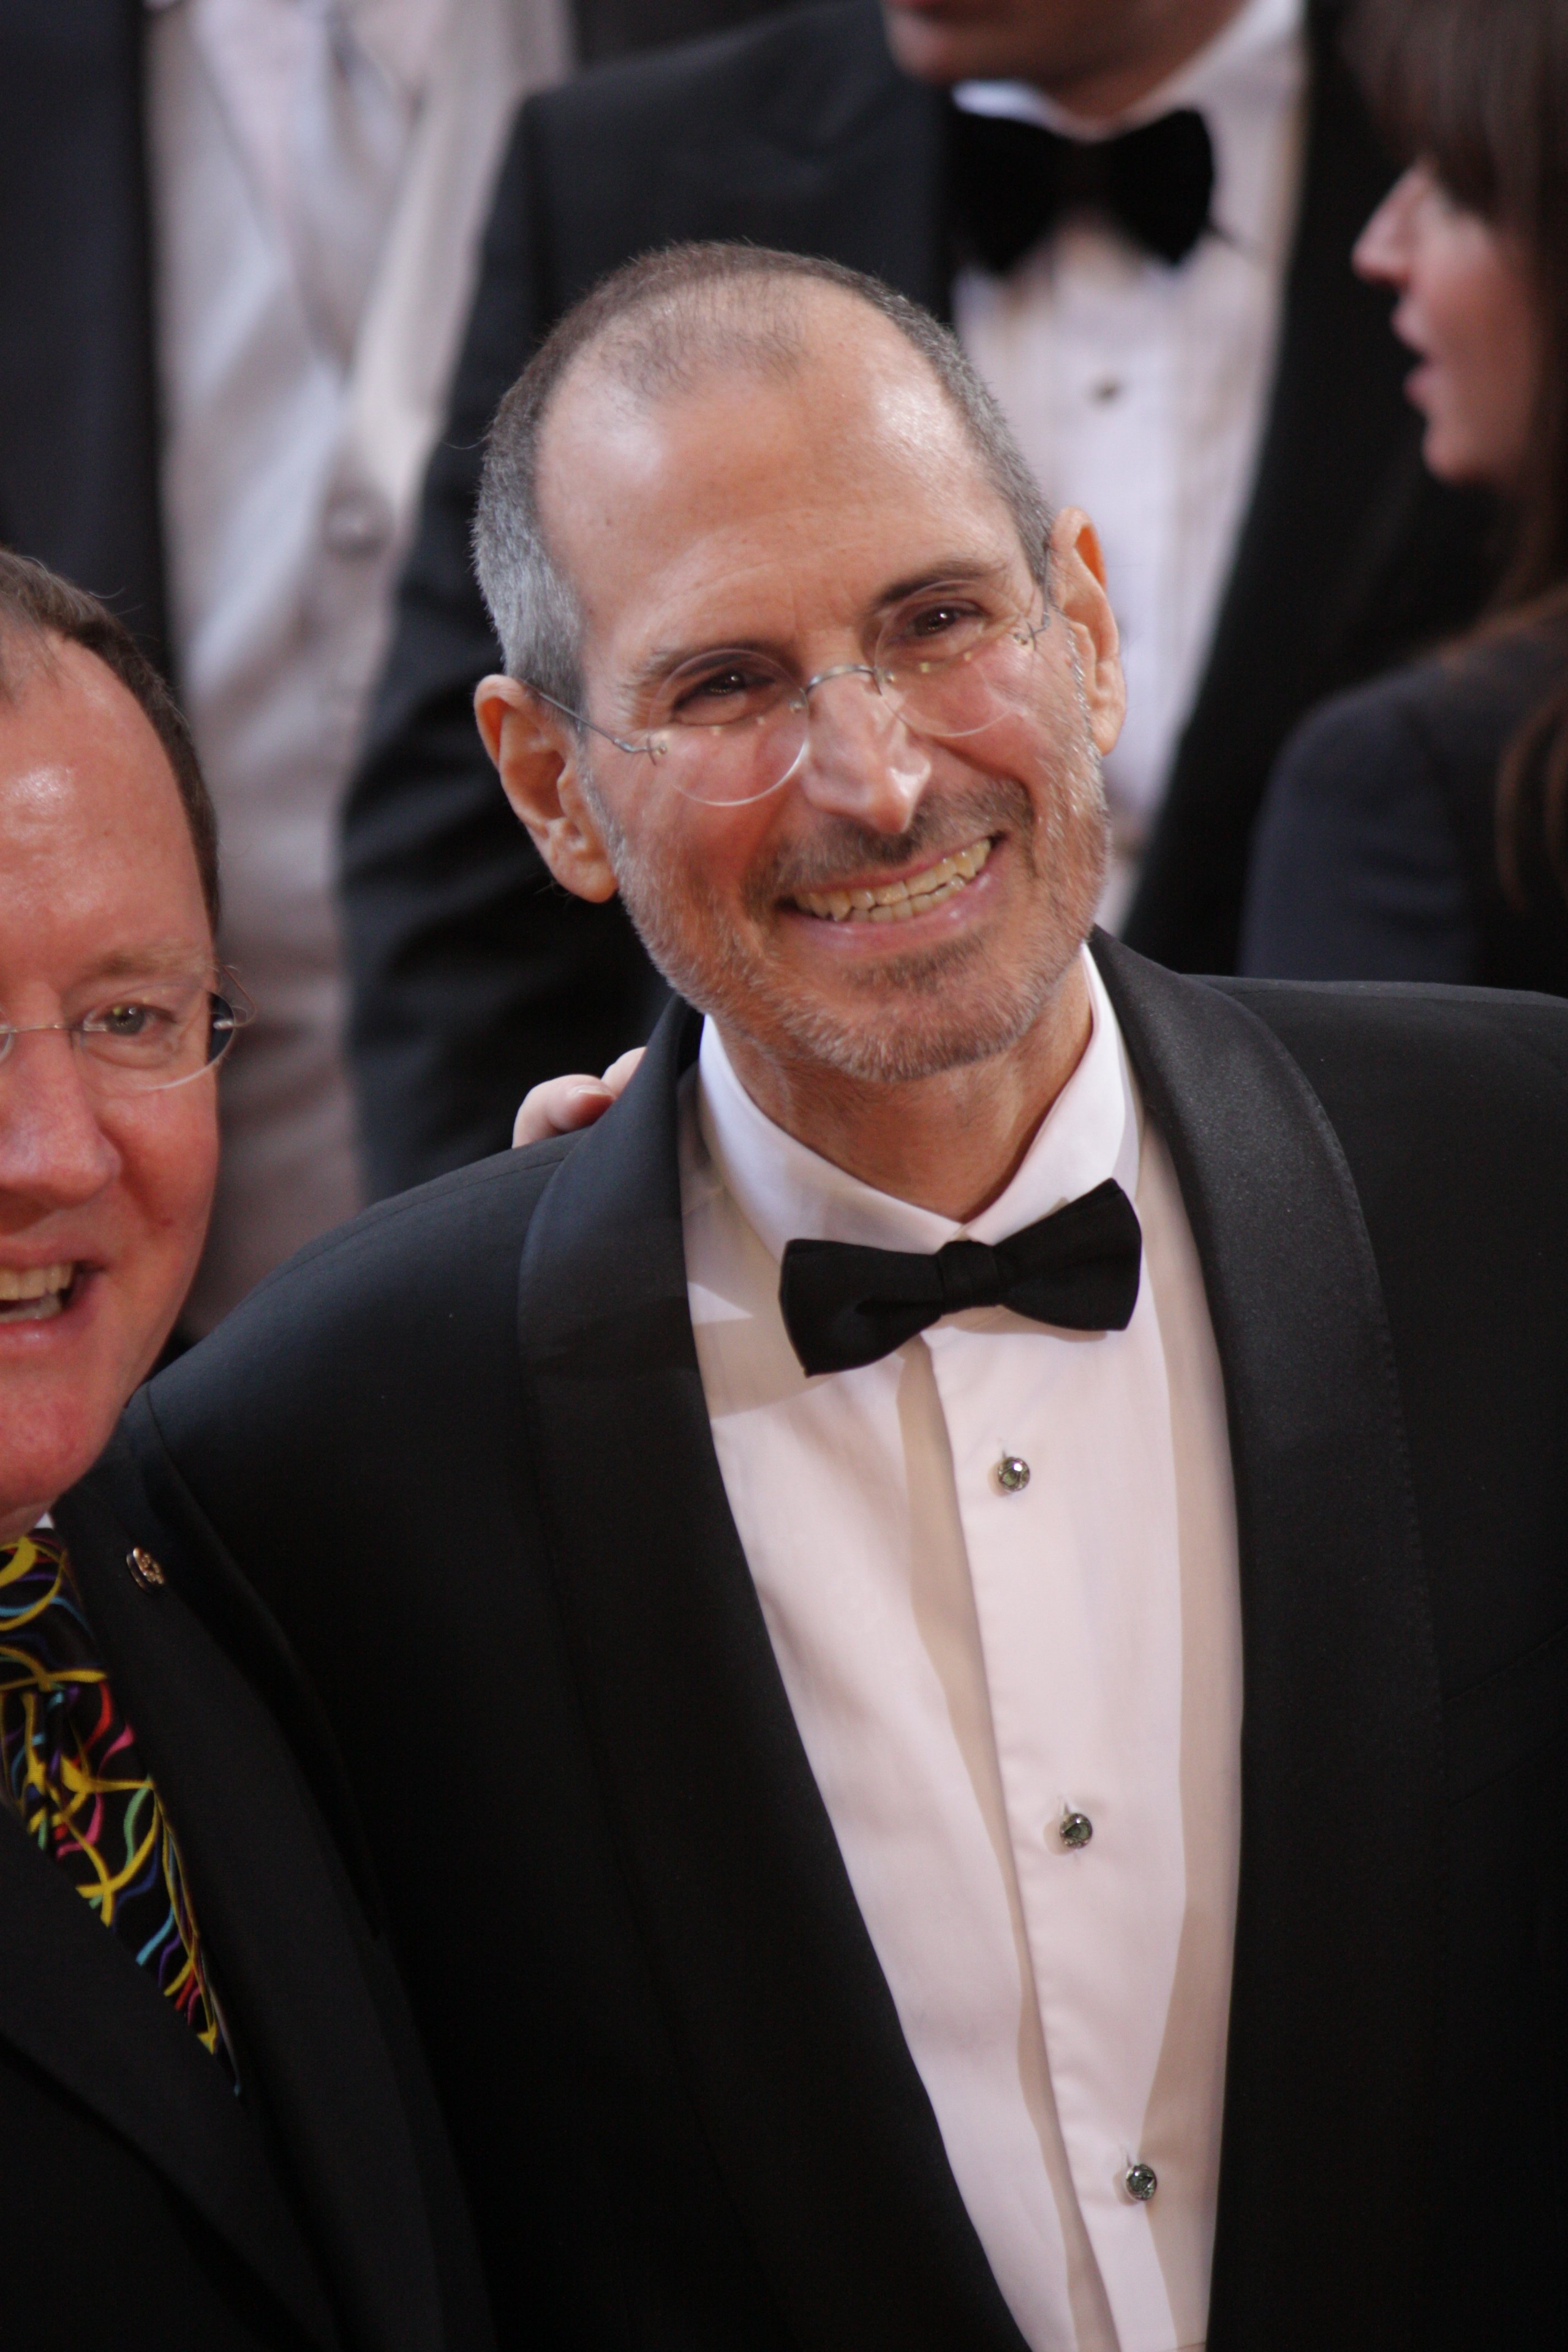 Apple founder, Steve Jobs, on the red carpet of the 82nd annual Academy Awards.